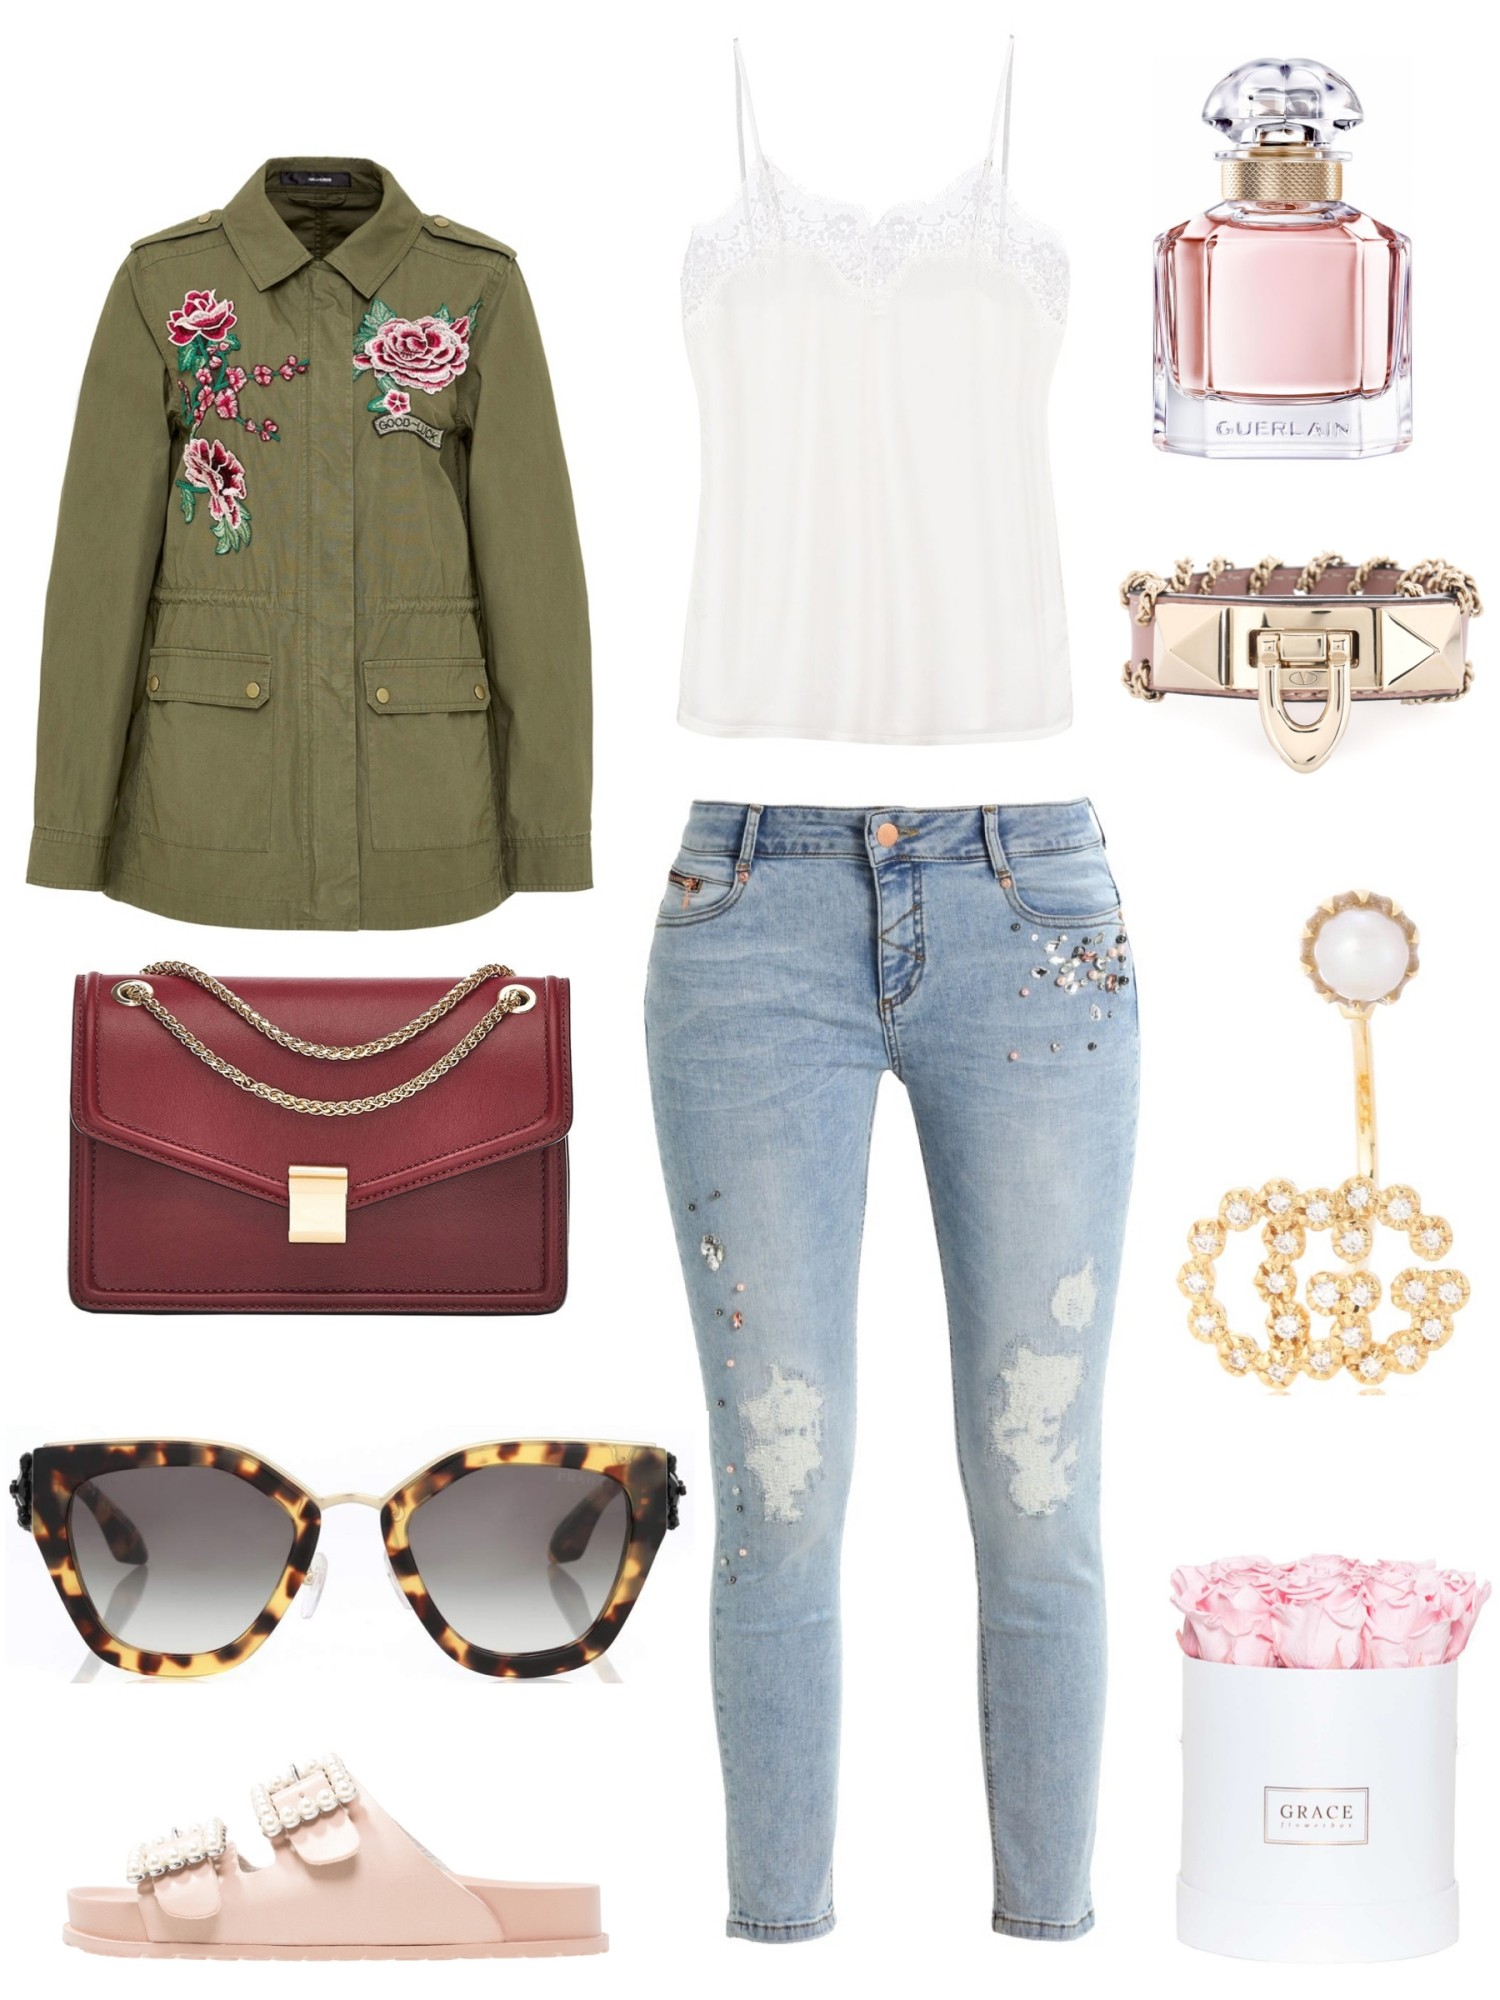 Outfit Inspiration So Ready For Spring With Cool New Items